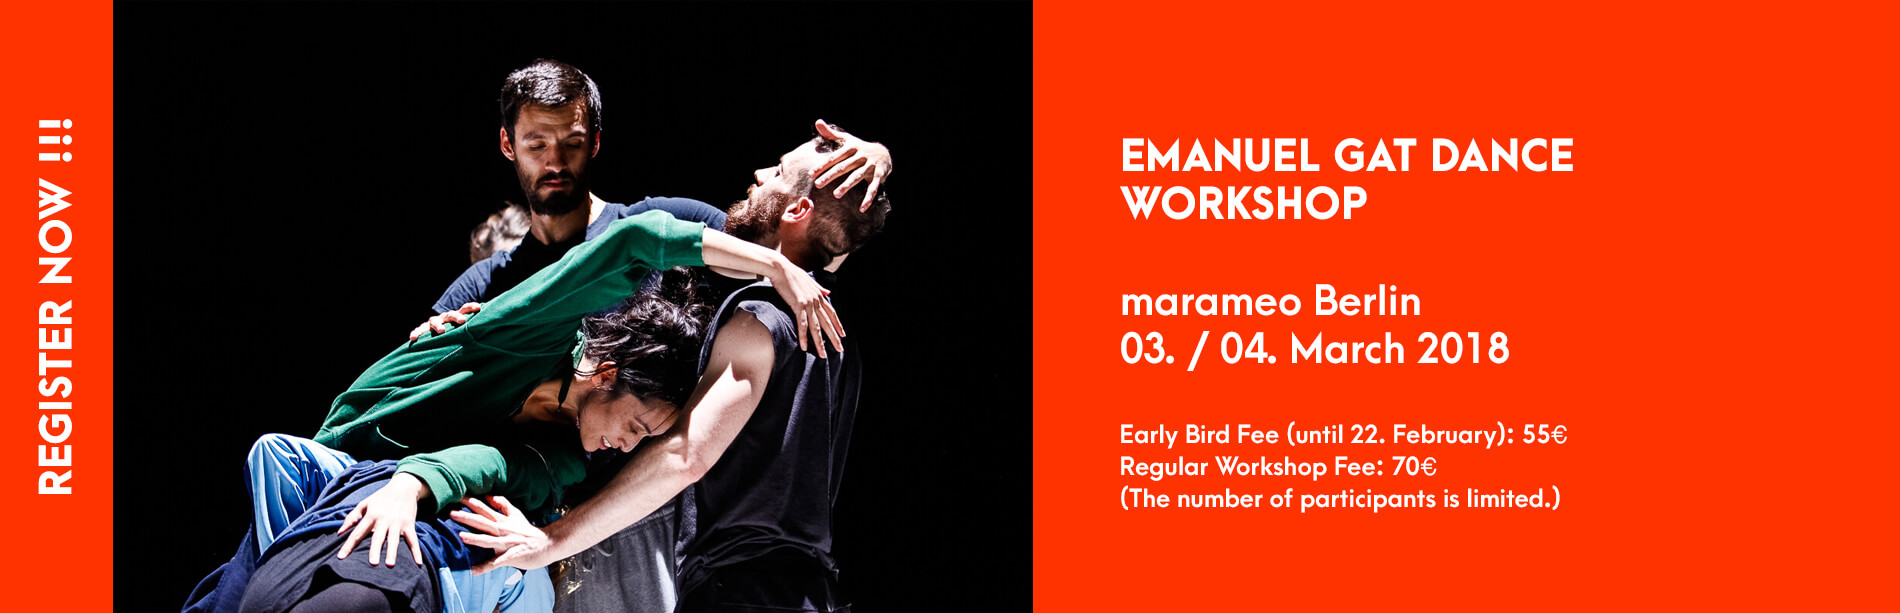 Emanuel Gat Workshop Marameo Berlin